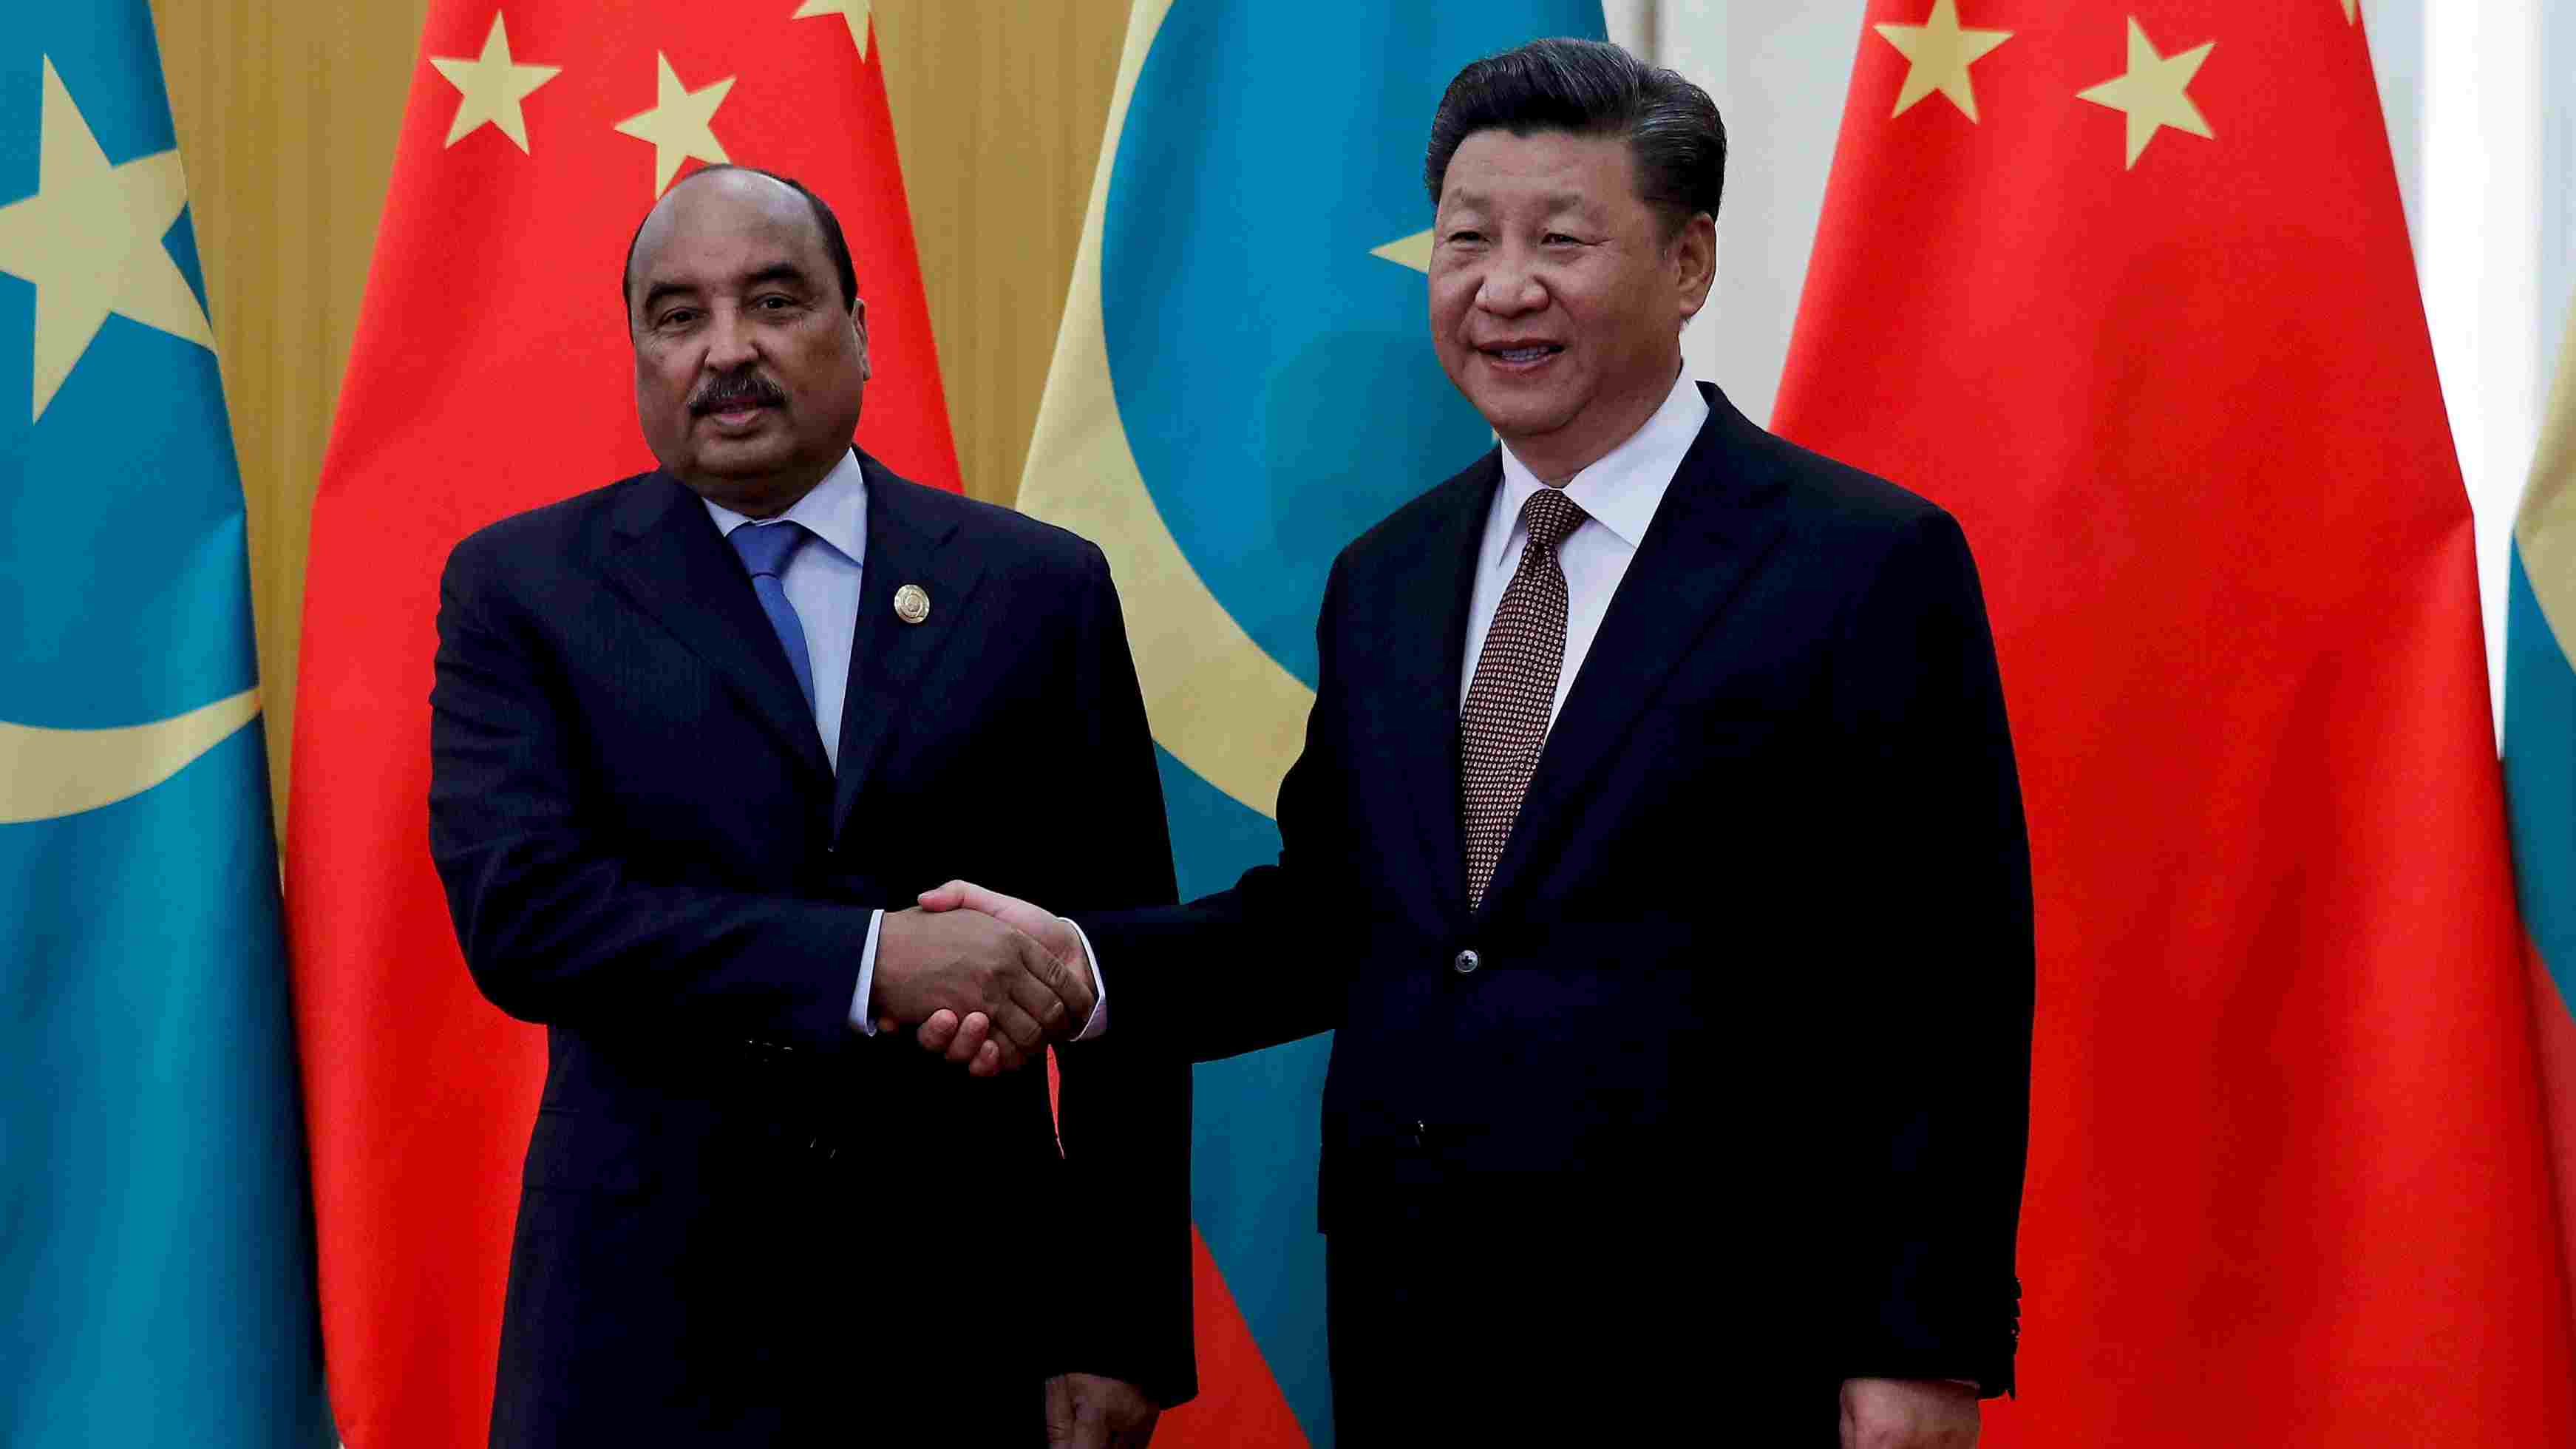 China cooperates with Africa without any political conditions